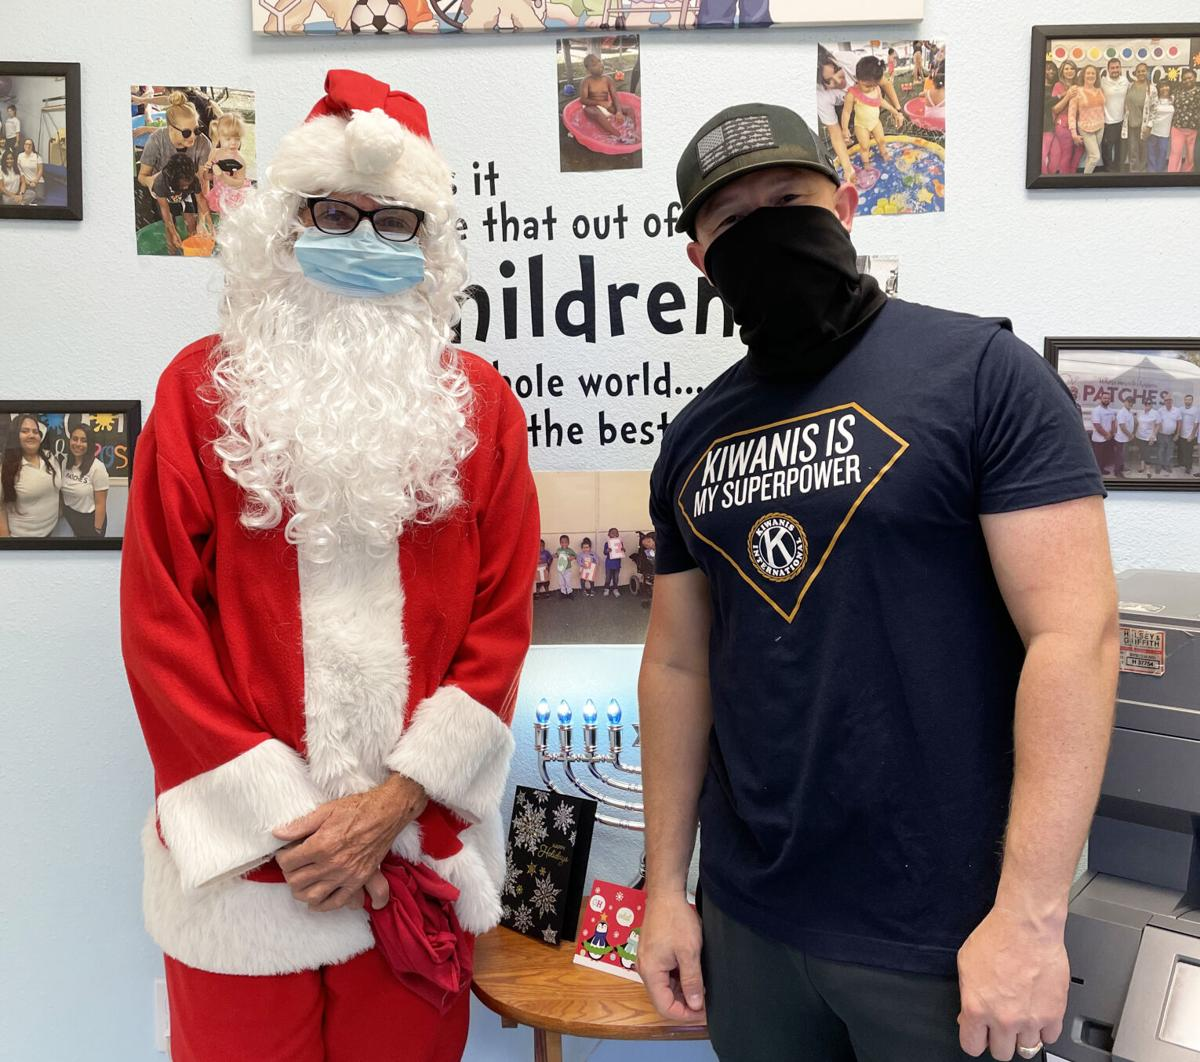 Rotary Club Santa, Phil Marraccini and 1st Lt. Arnold A. Perez of the Kiwanis Club of Homestead-South Dade, joined together to bring toys to children at PATCHES PPEC.